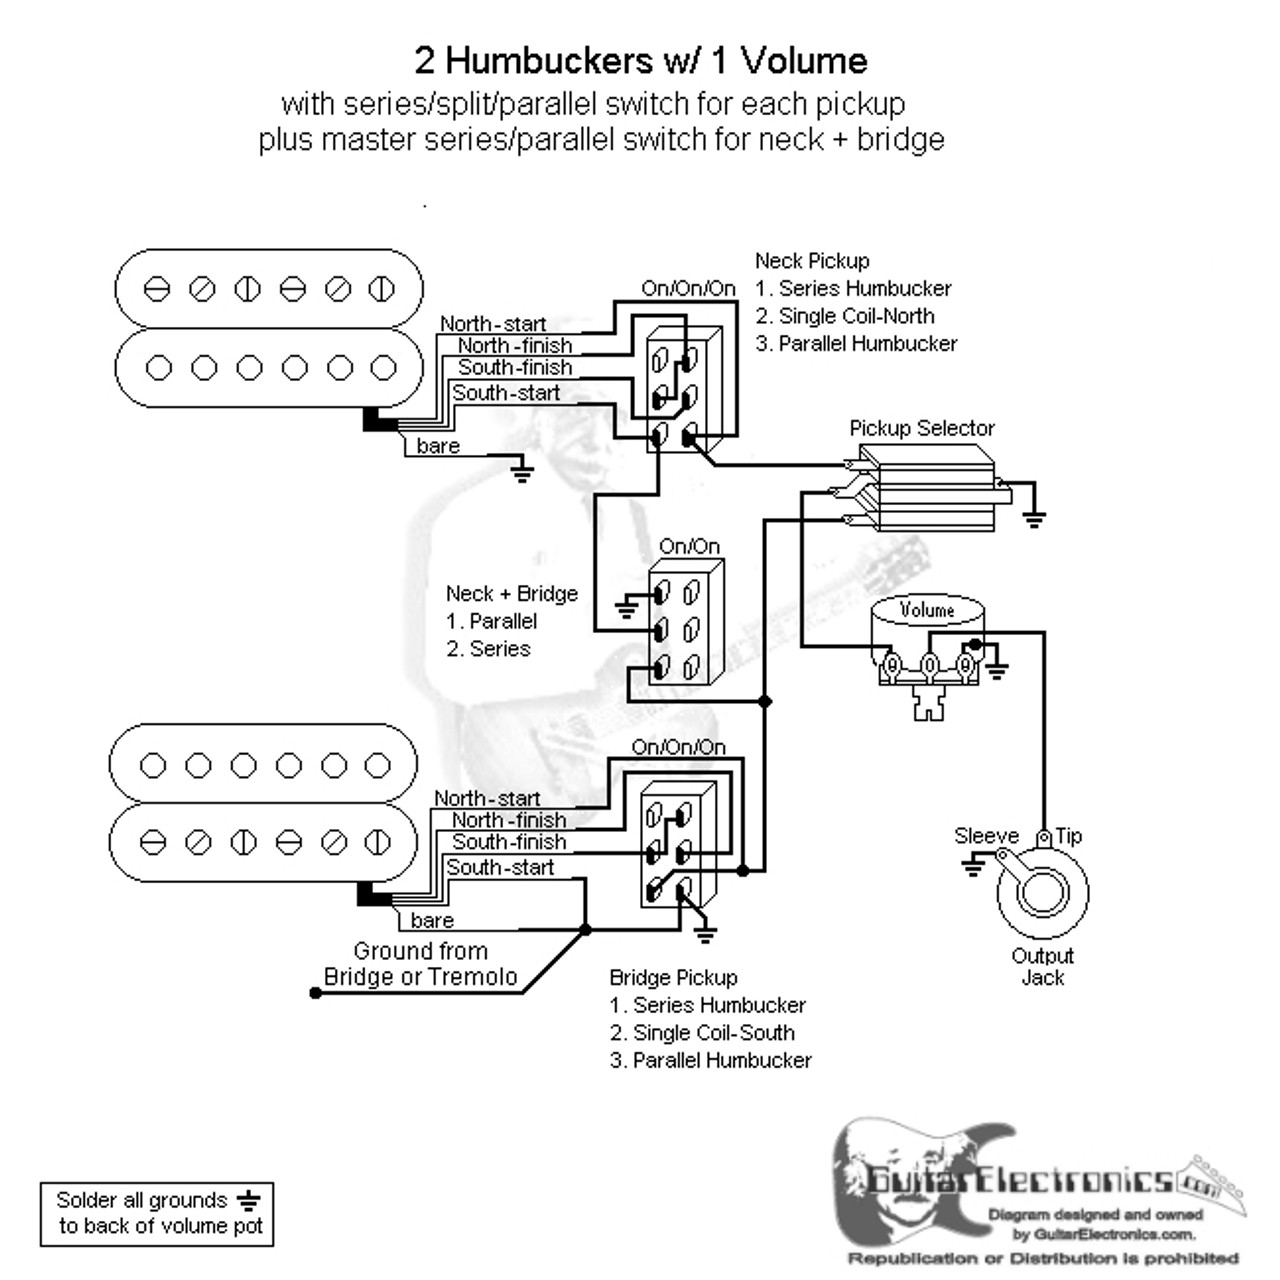 small resolution of  pickup wiring this diagram shows how to 2 hbs 3 way toggle 1 vol series split parallel u0026 master series parallelfor split